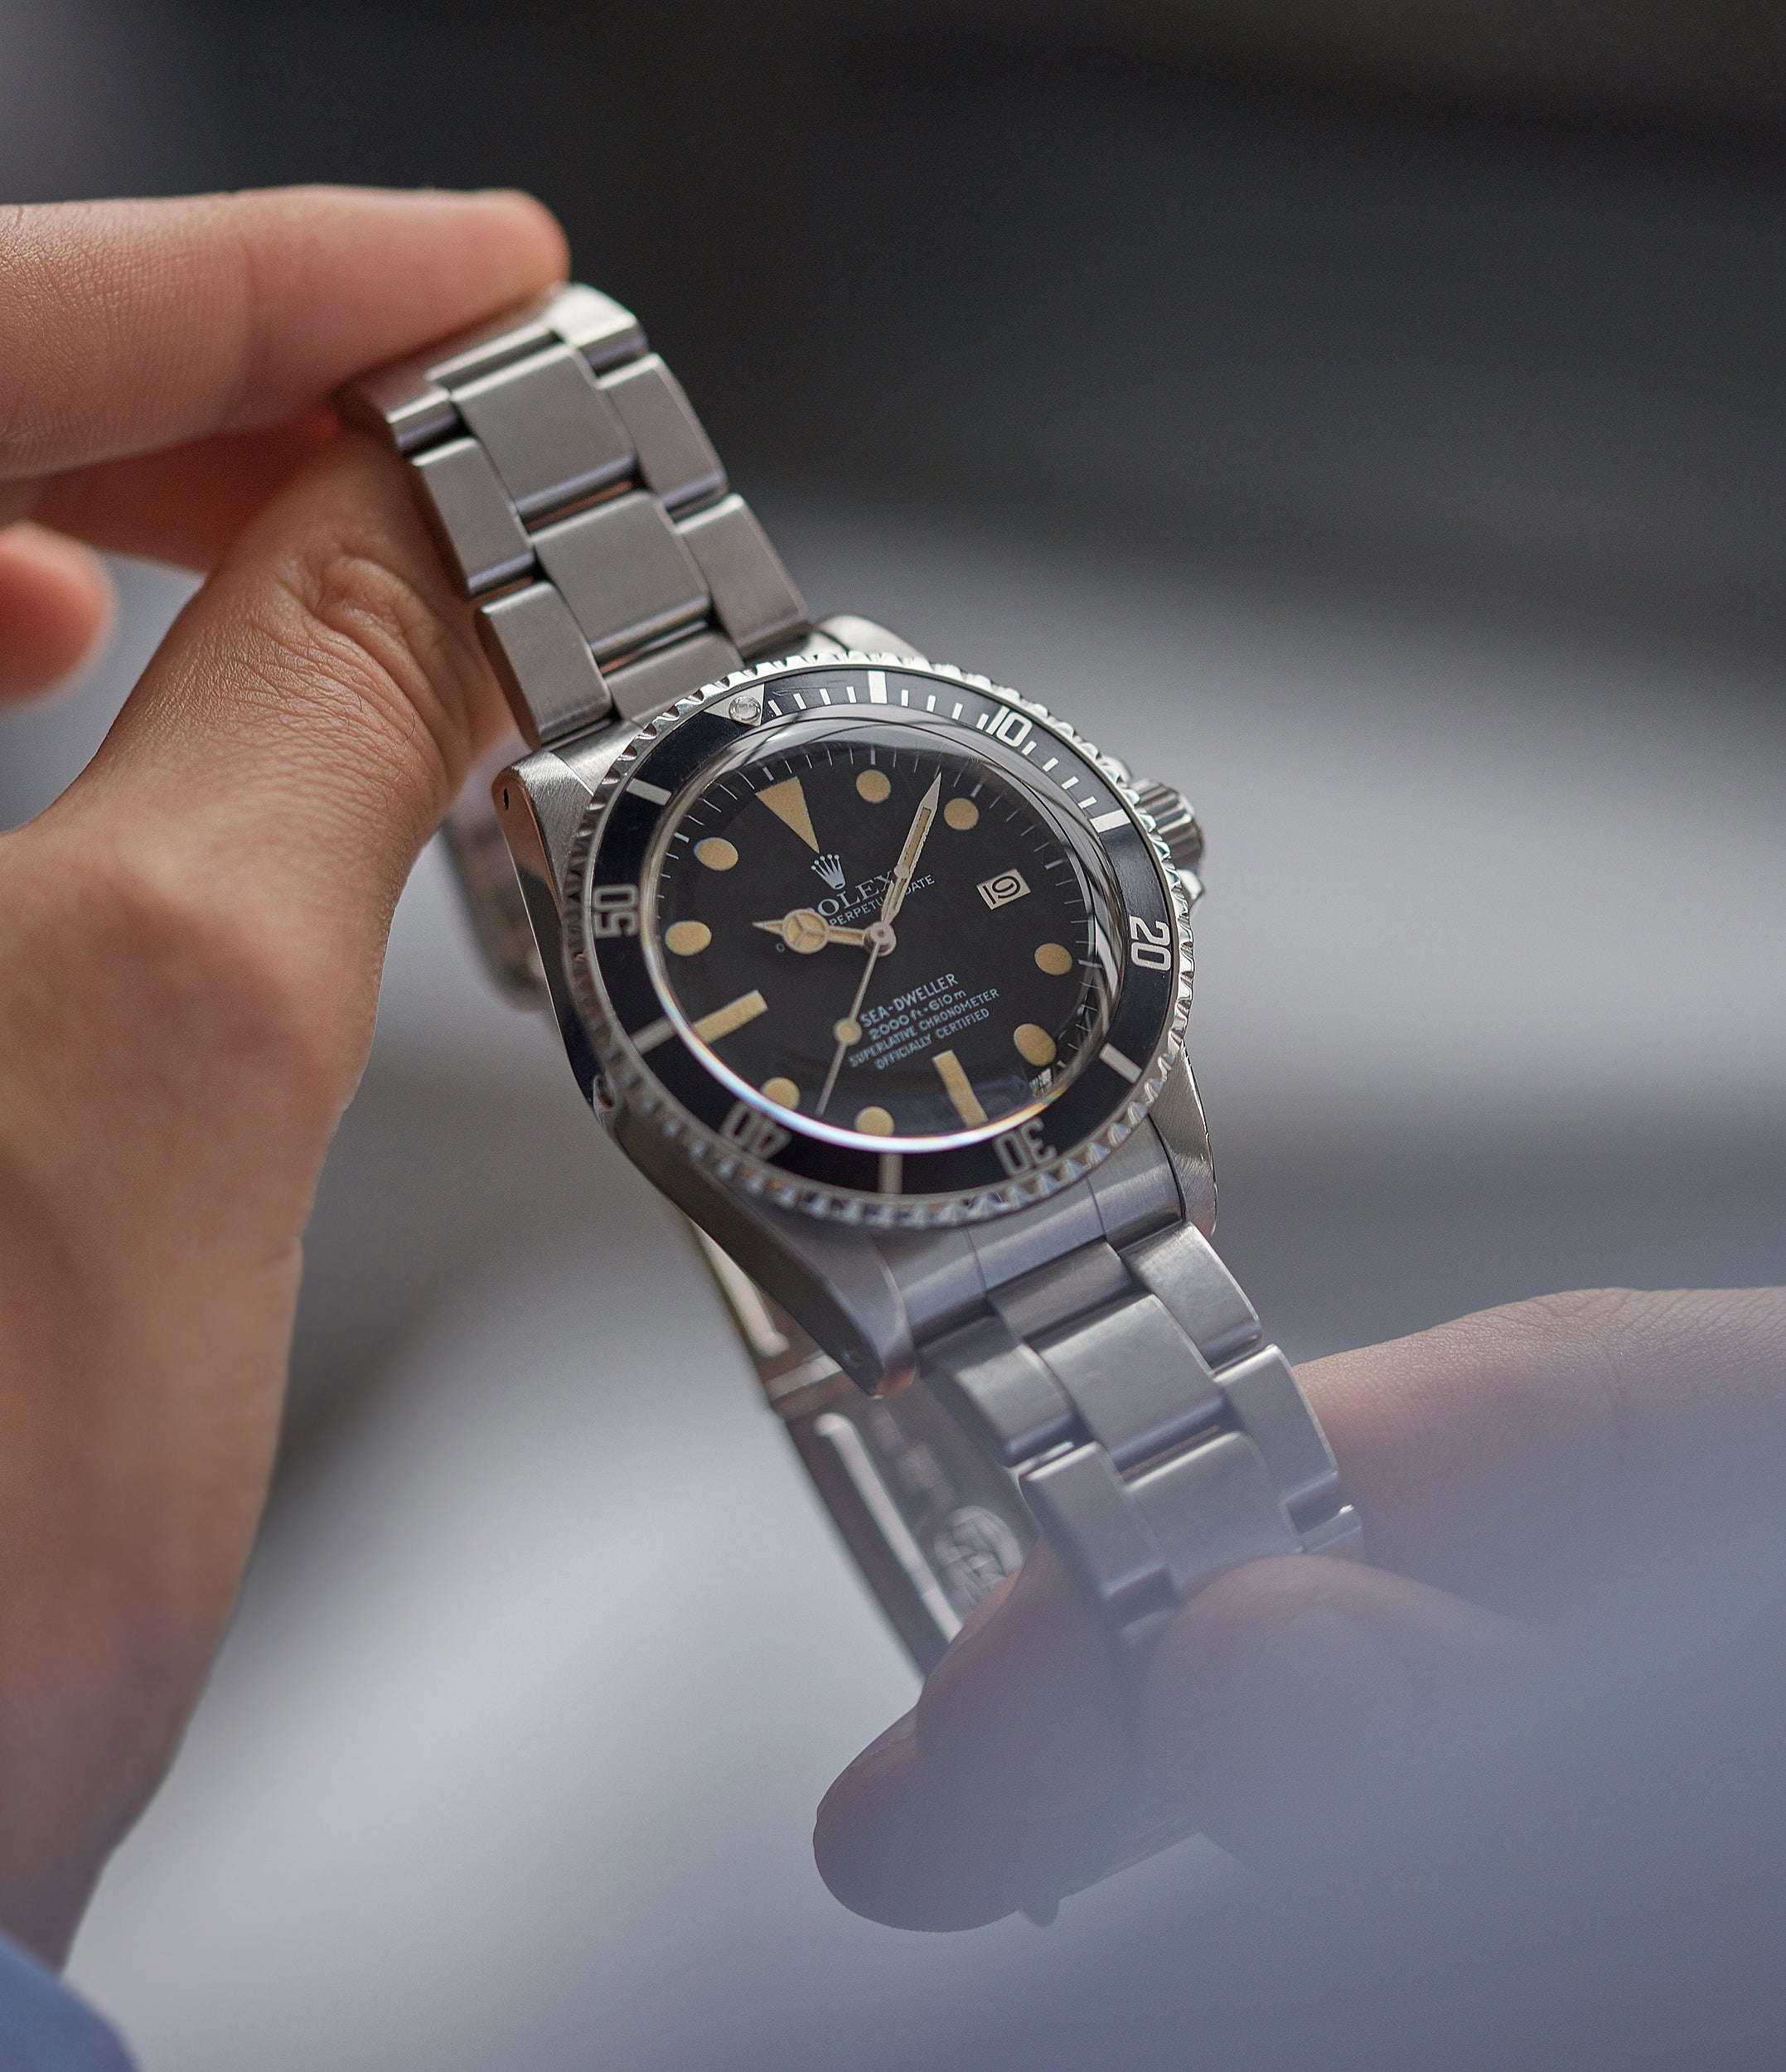 Buy Rolex Sea-Dweller Great White 1665 stainless steel